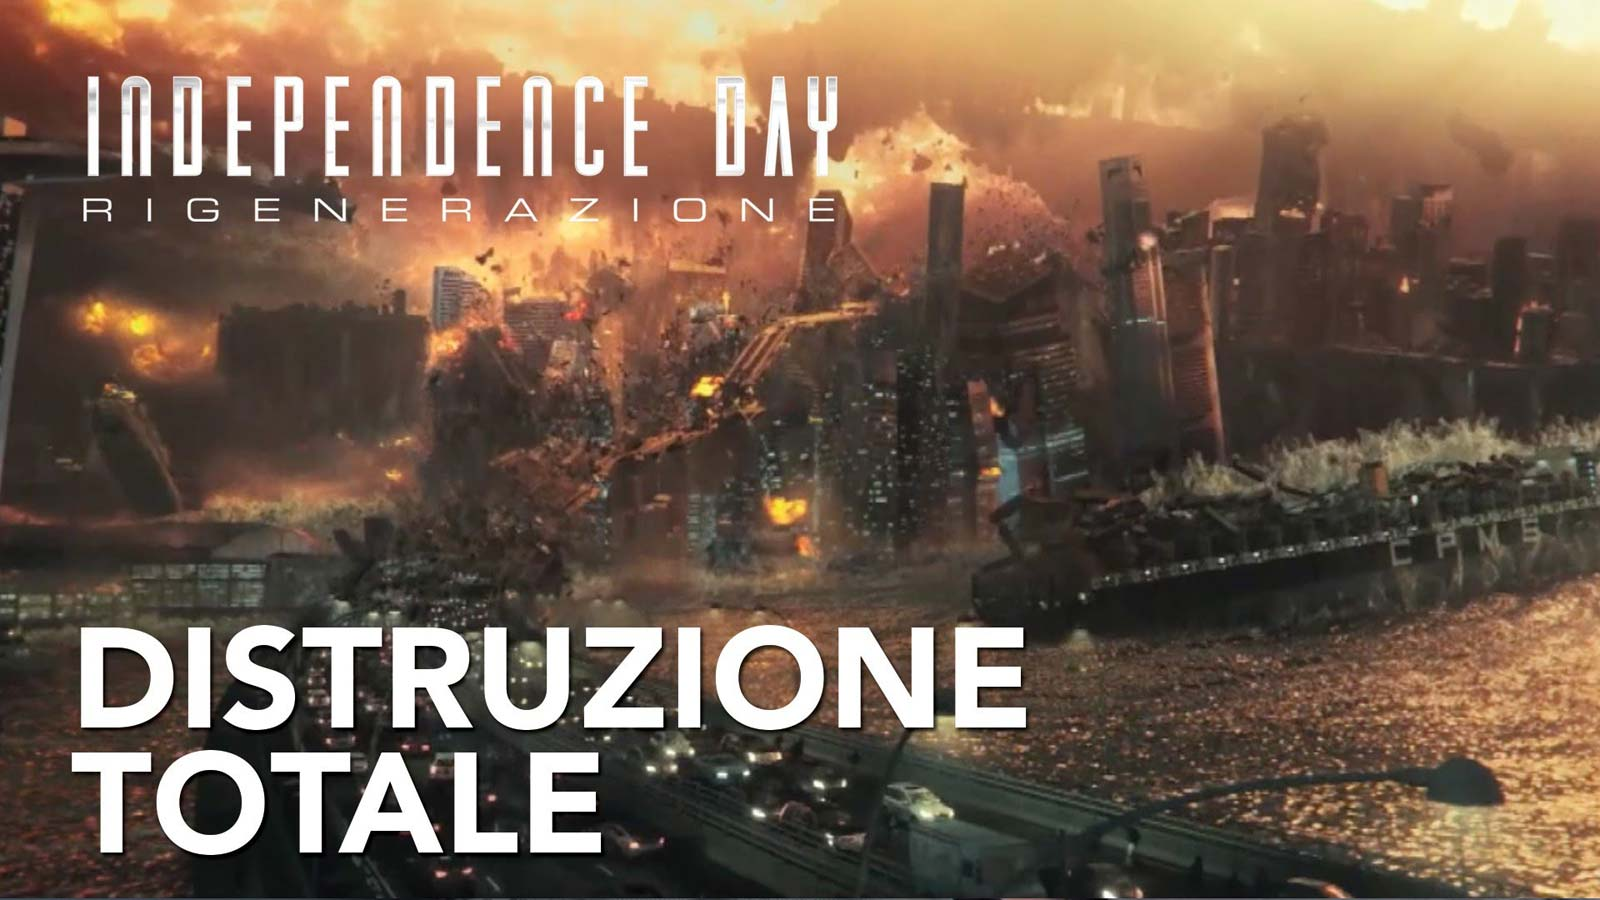 image Distruzione Totale - Featurette da Independence Day: Rigenerazione